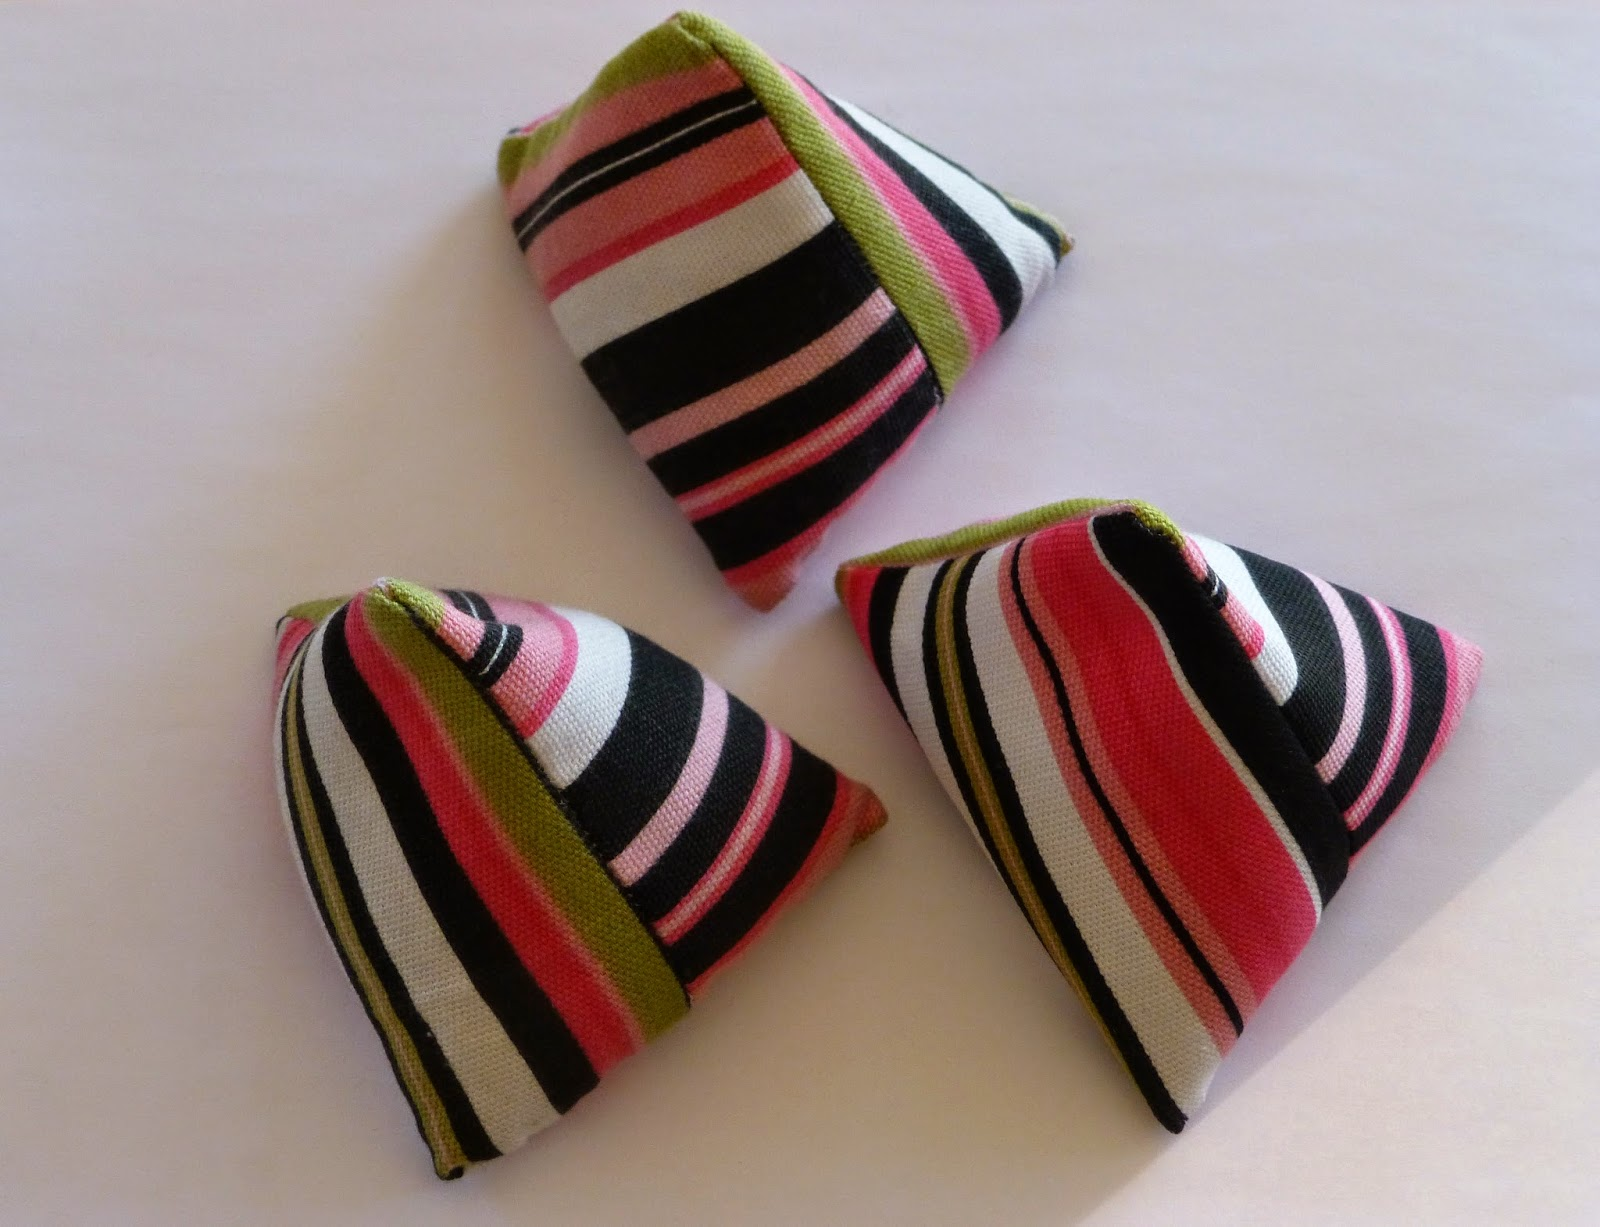 Sewing Kit How To Make Soft Juggling Balls Pyramid Bean Bags